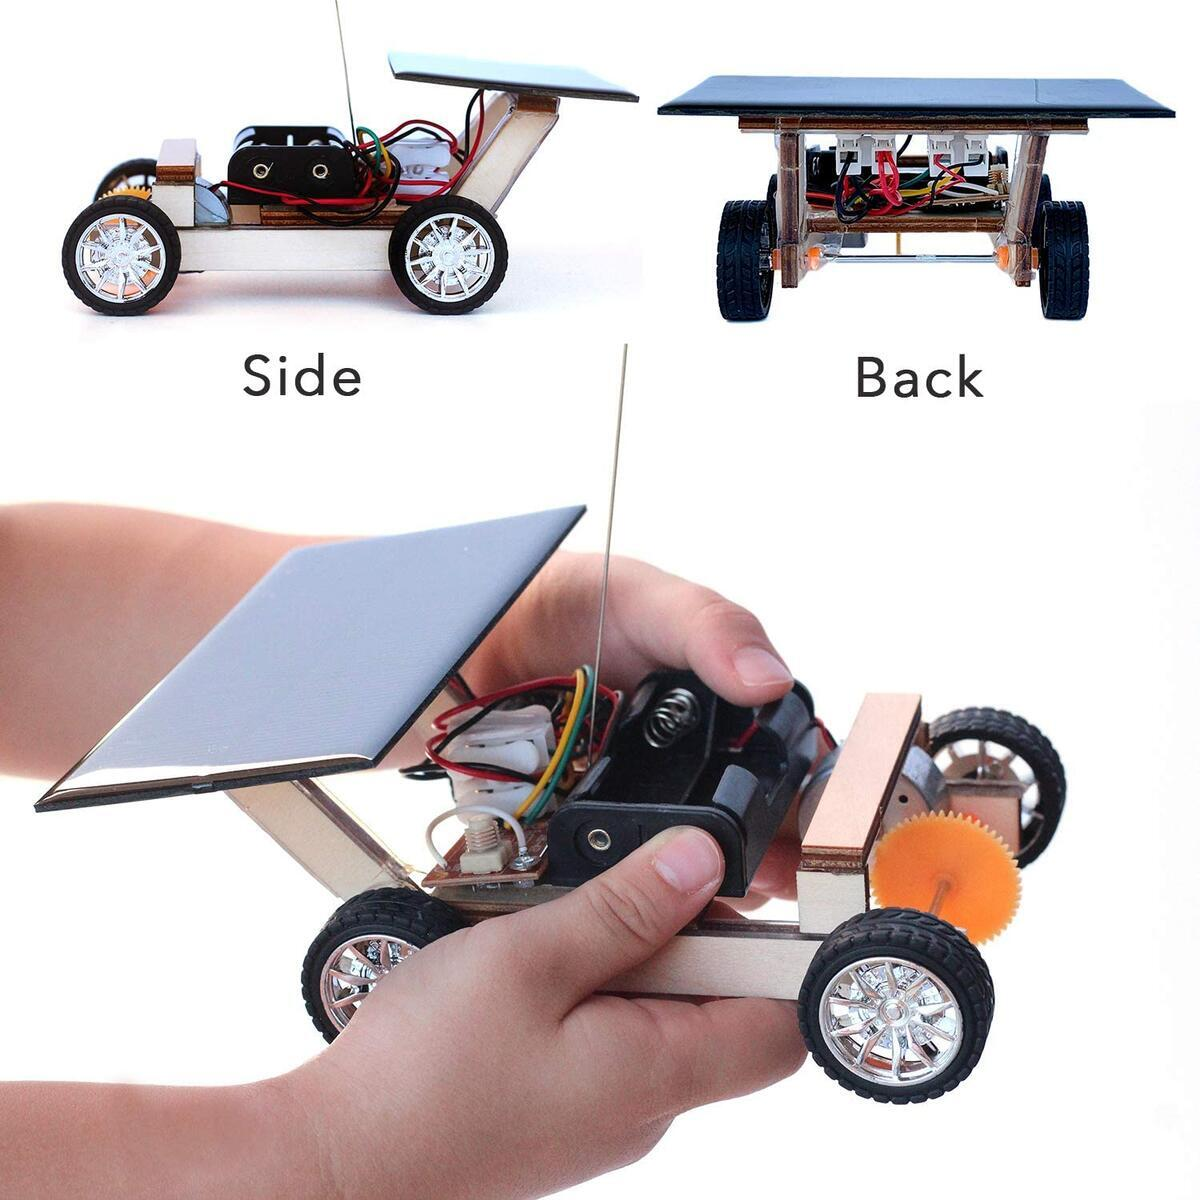 Pica Toys Wooden Solar and Wireless Remote Control Car Robotics Creative Engineering Circuit Science Stem Building Kit - Hybird Power For Electric Motor - DIY Experiment For Kids, Teens and Adults